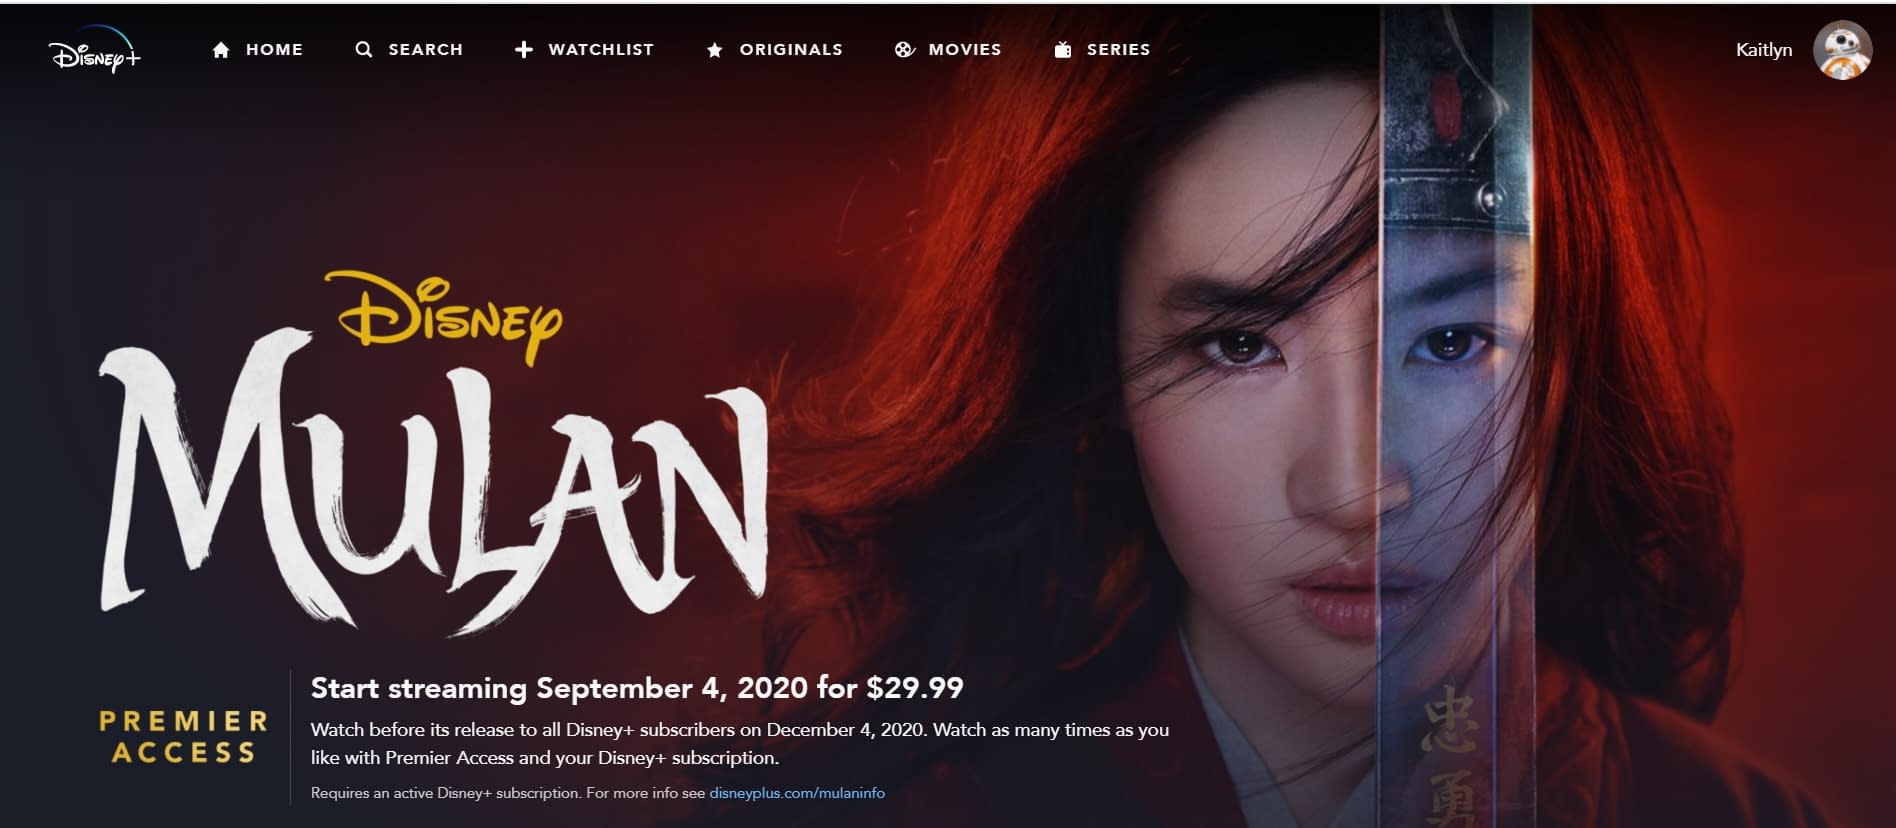 Mulan Will Be Available for Free on Disney+....Eventually